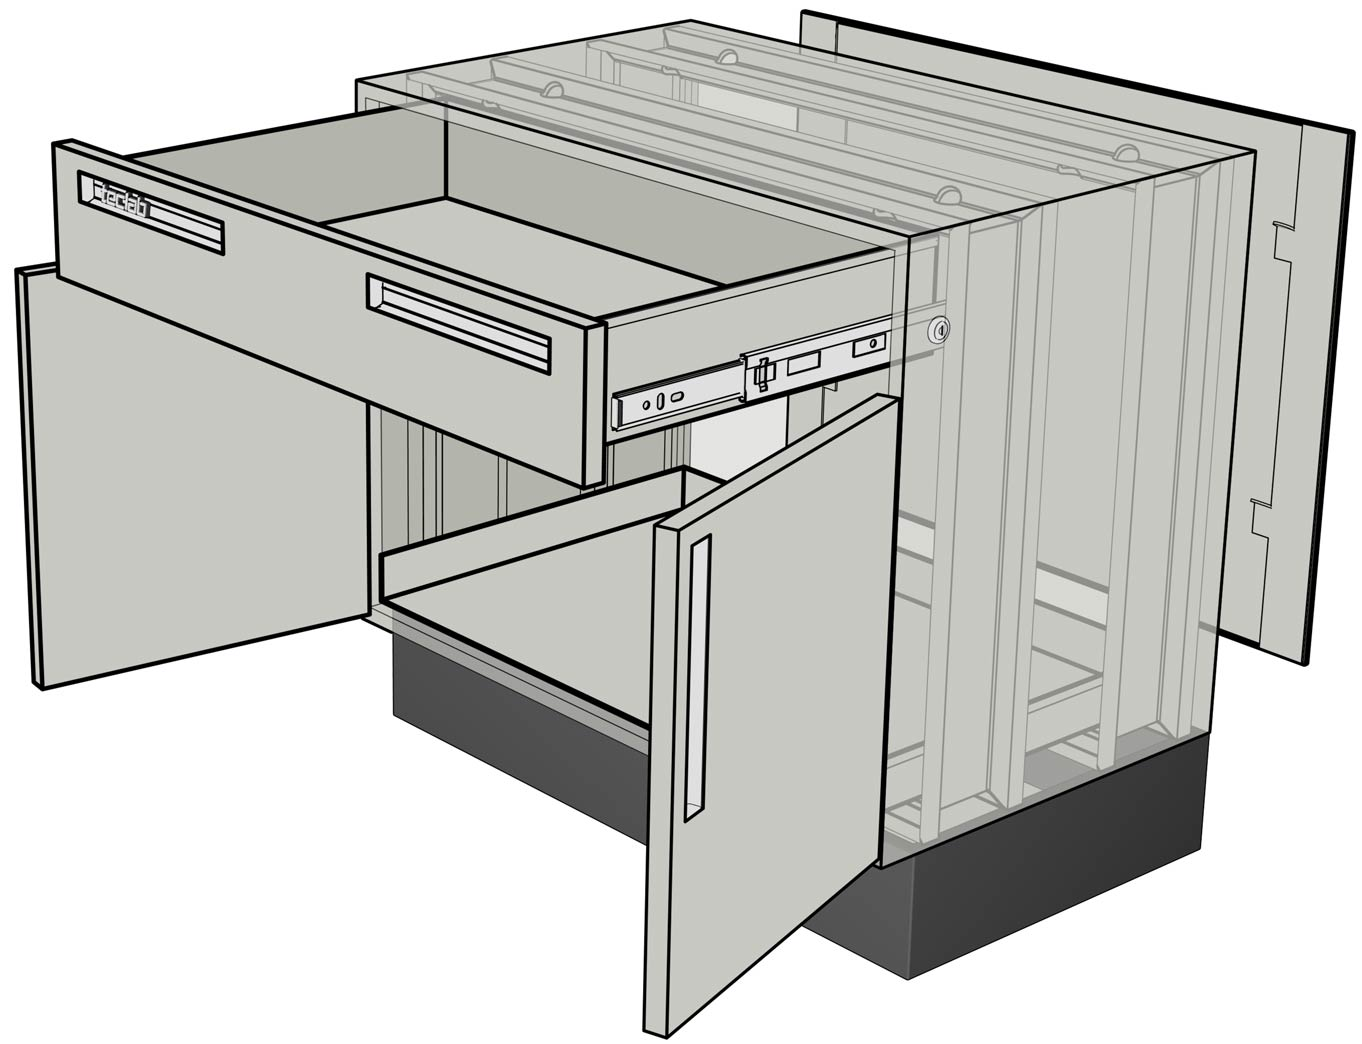 Cabinet Drawer Construction Details : Teclab base cabinet construction details